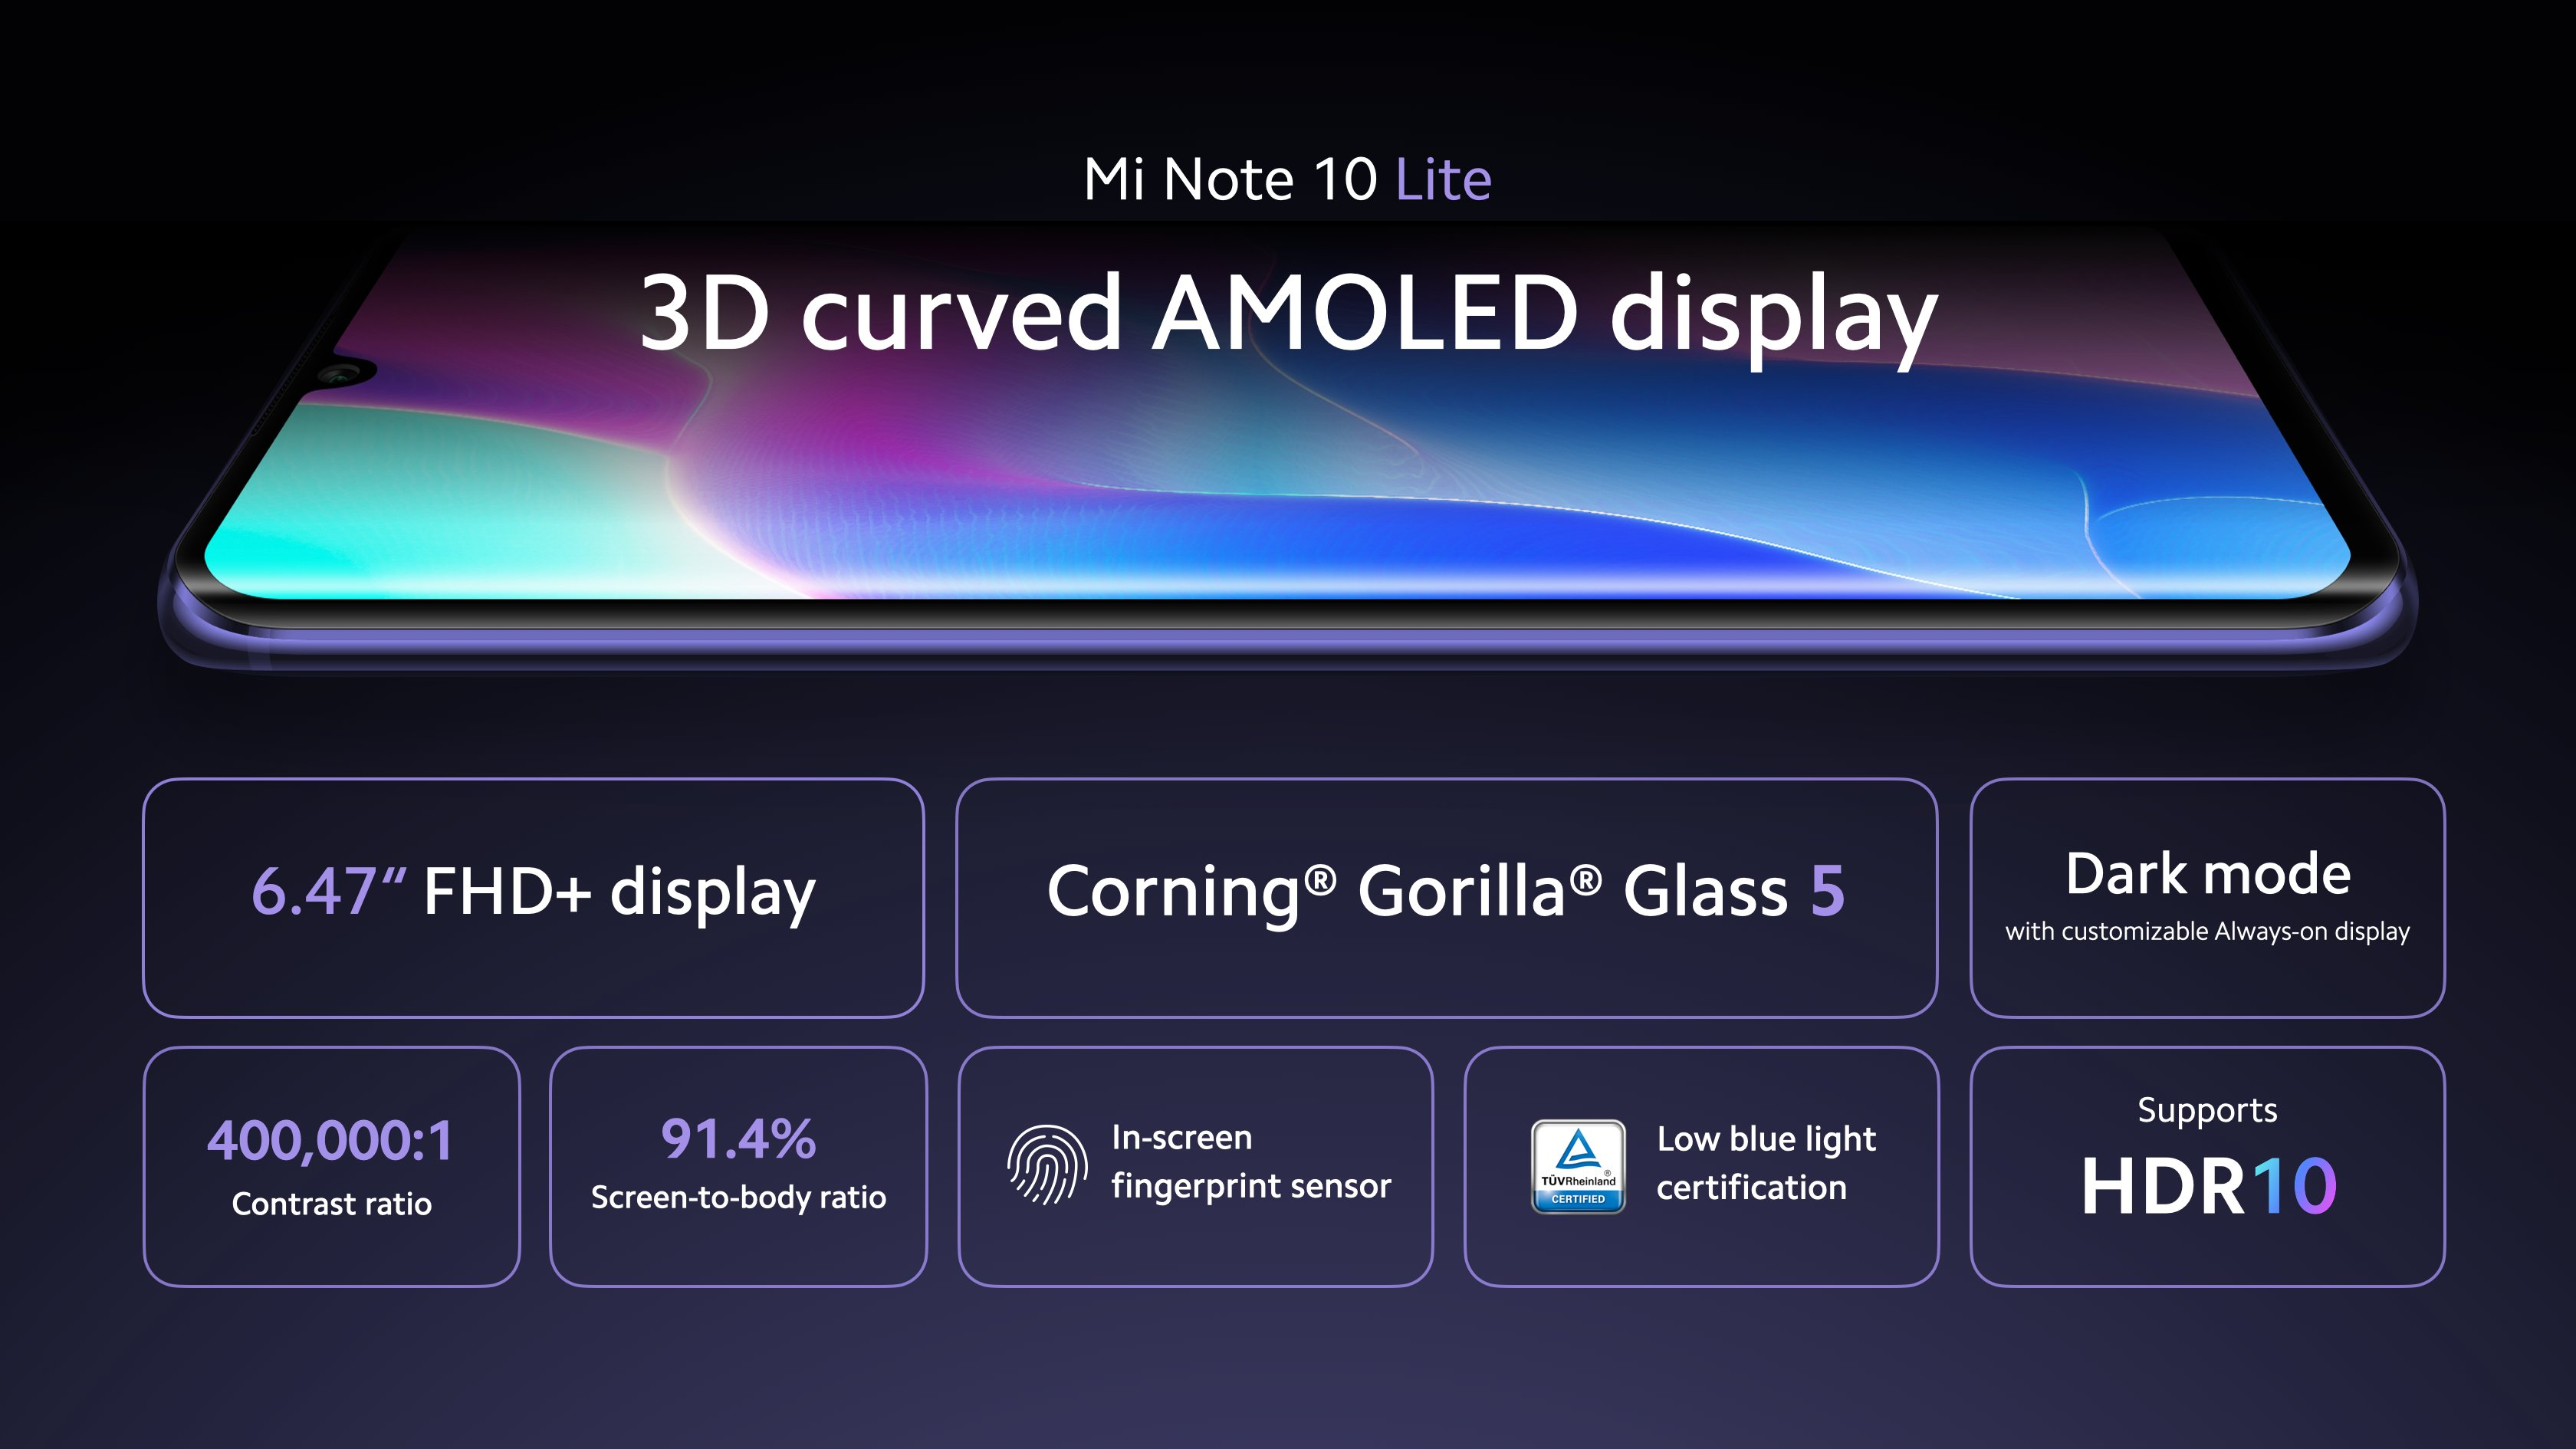 Display specifications of Mi note 10 lite